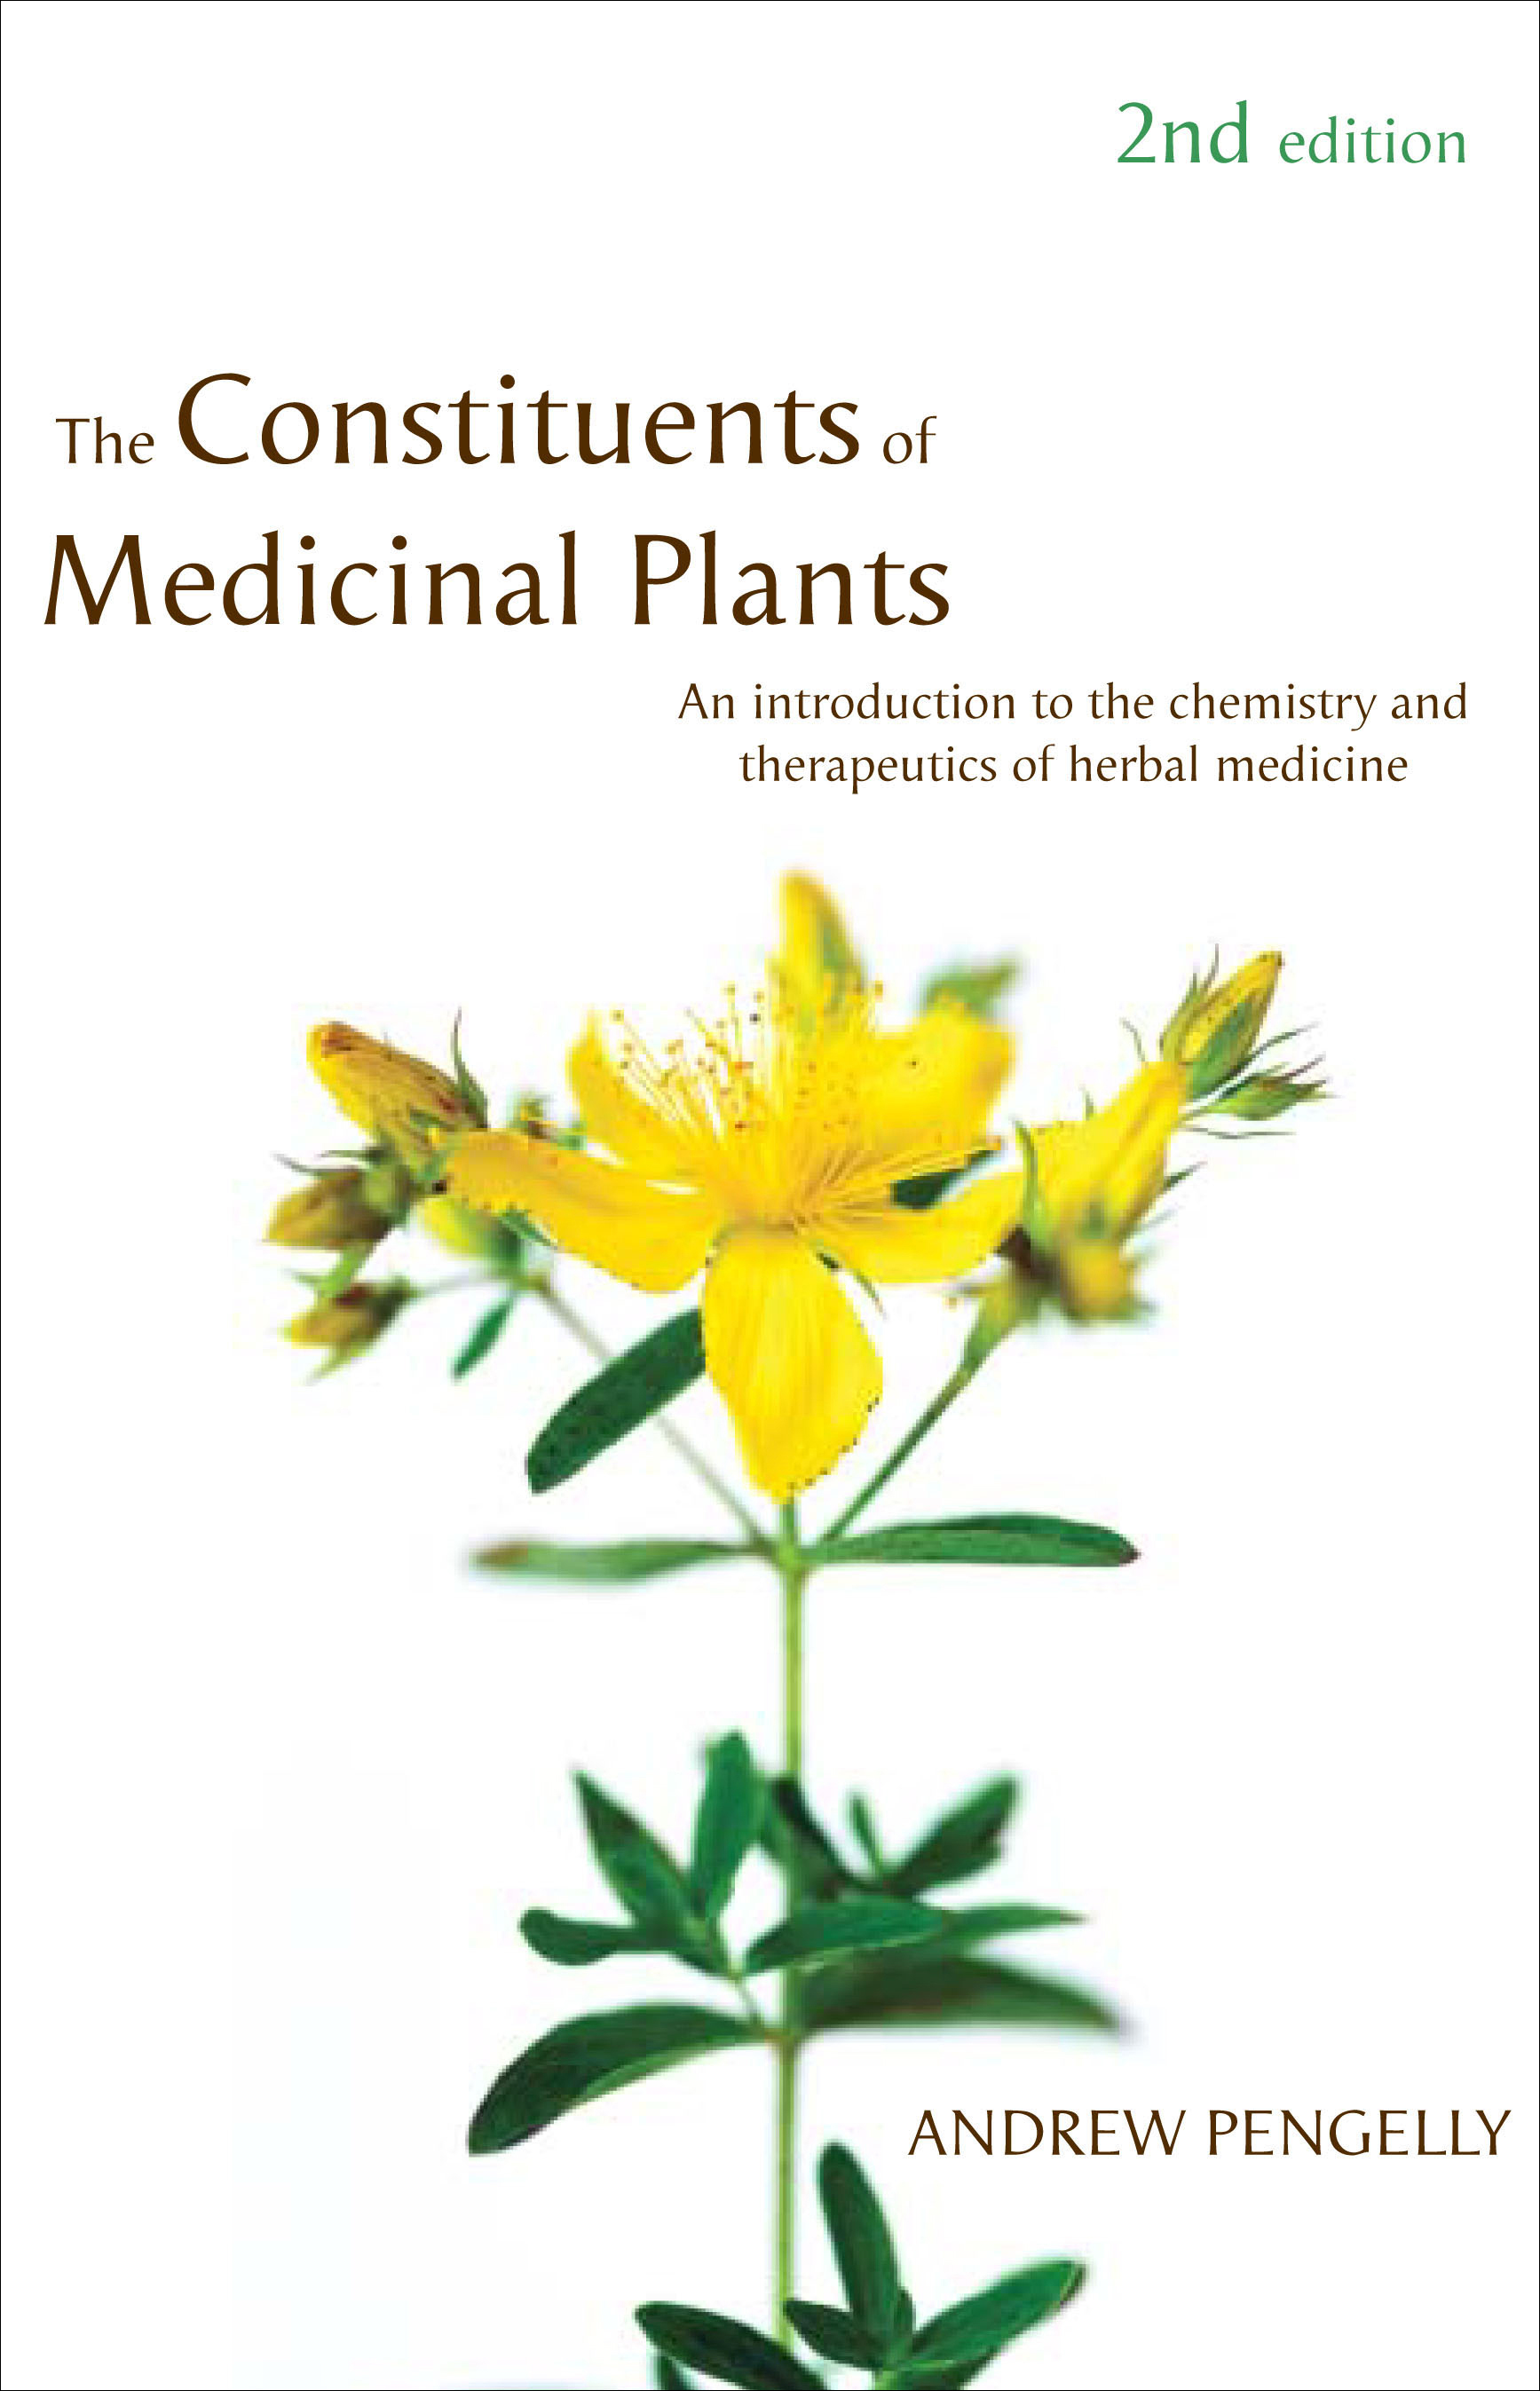 The Constituents of Medicinal Plants by Andrew Pengelly, ISBN: 9781741140521